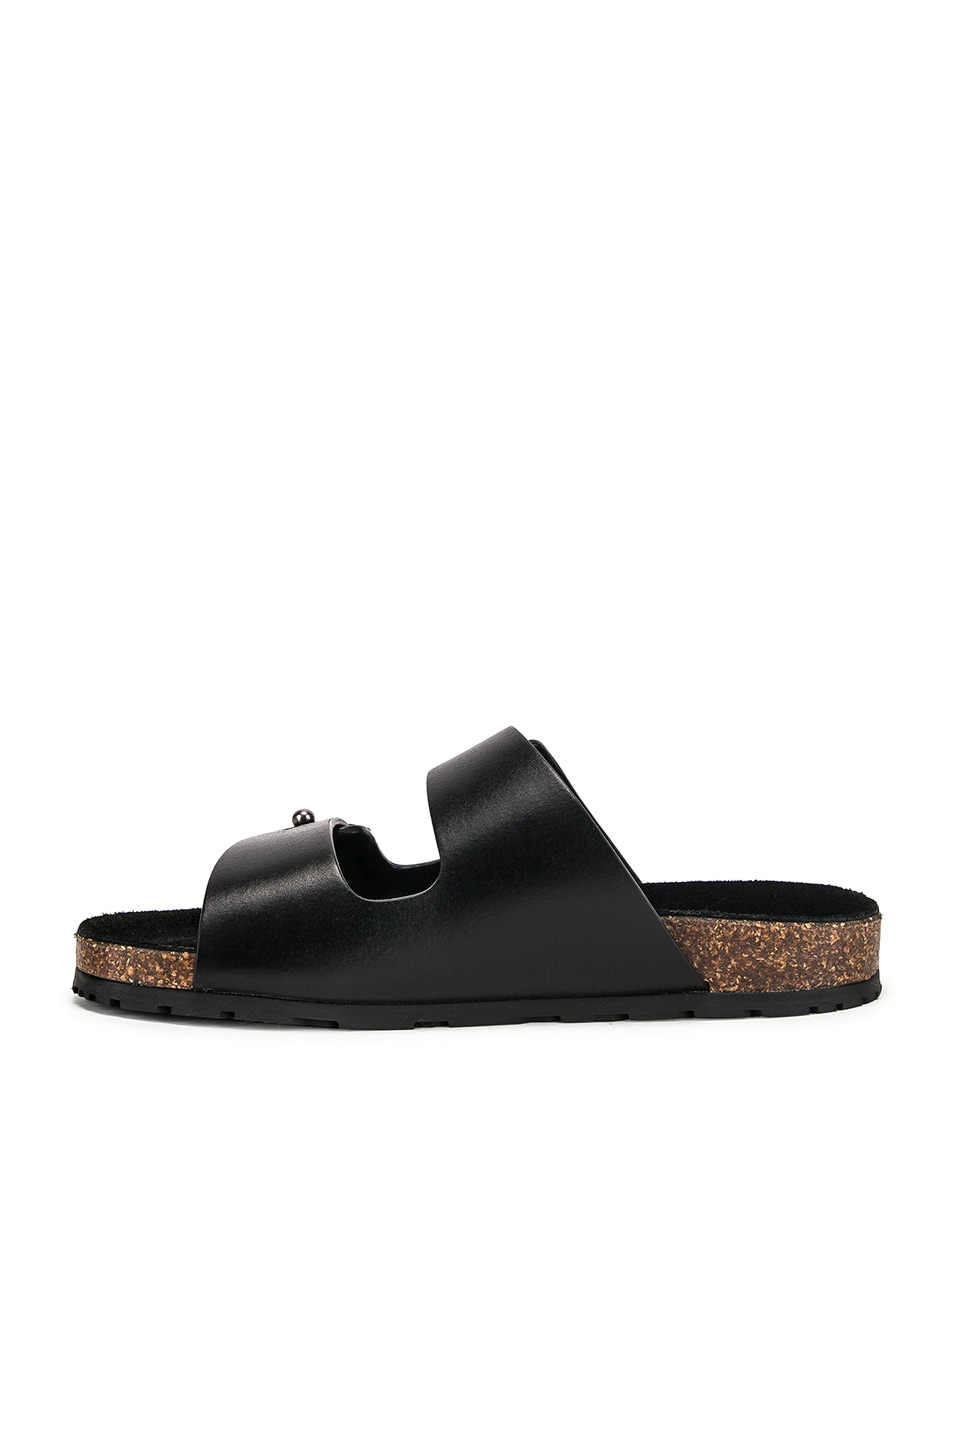 Image 5 of Saint Laurent Jimmy Sandals in Black